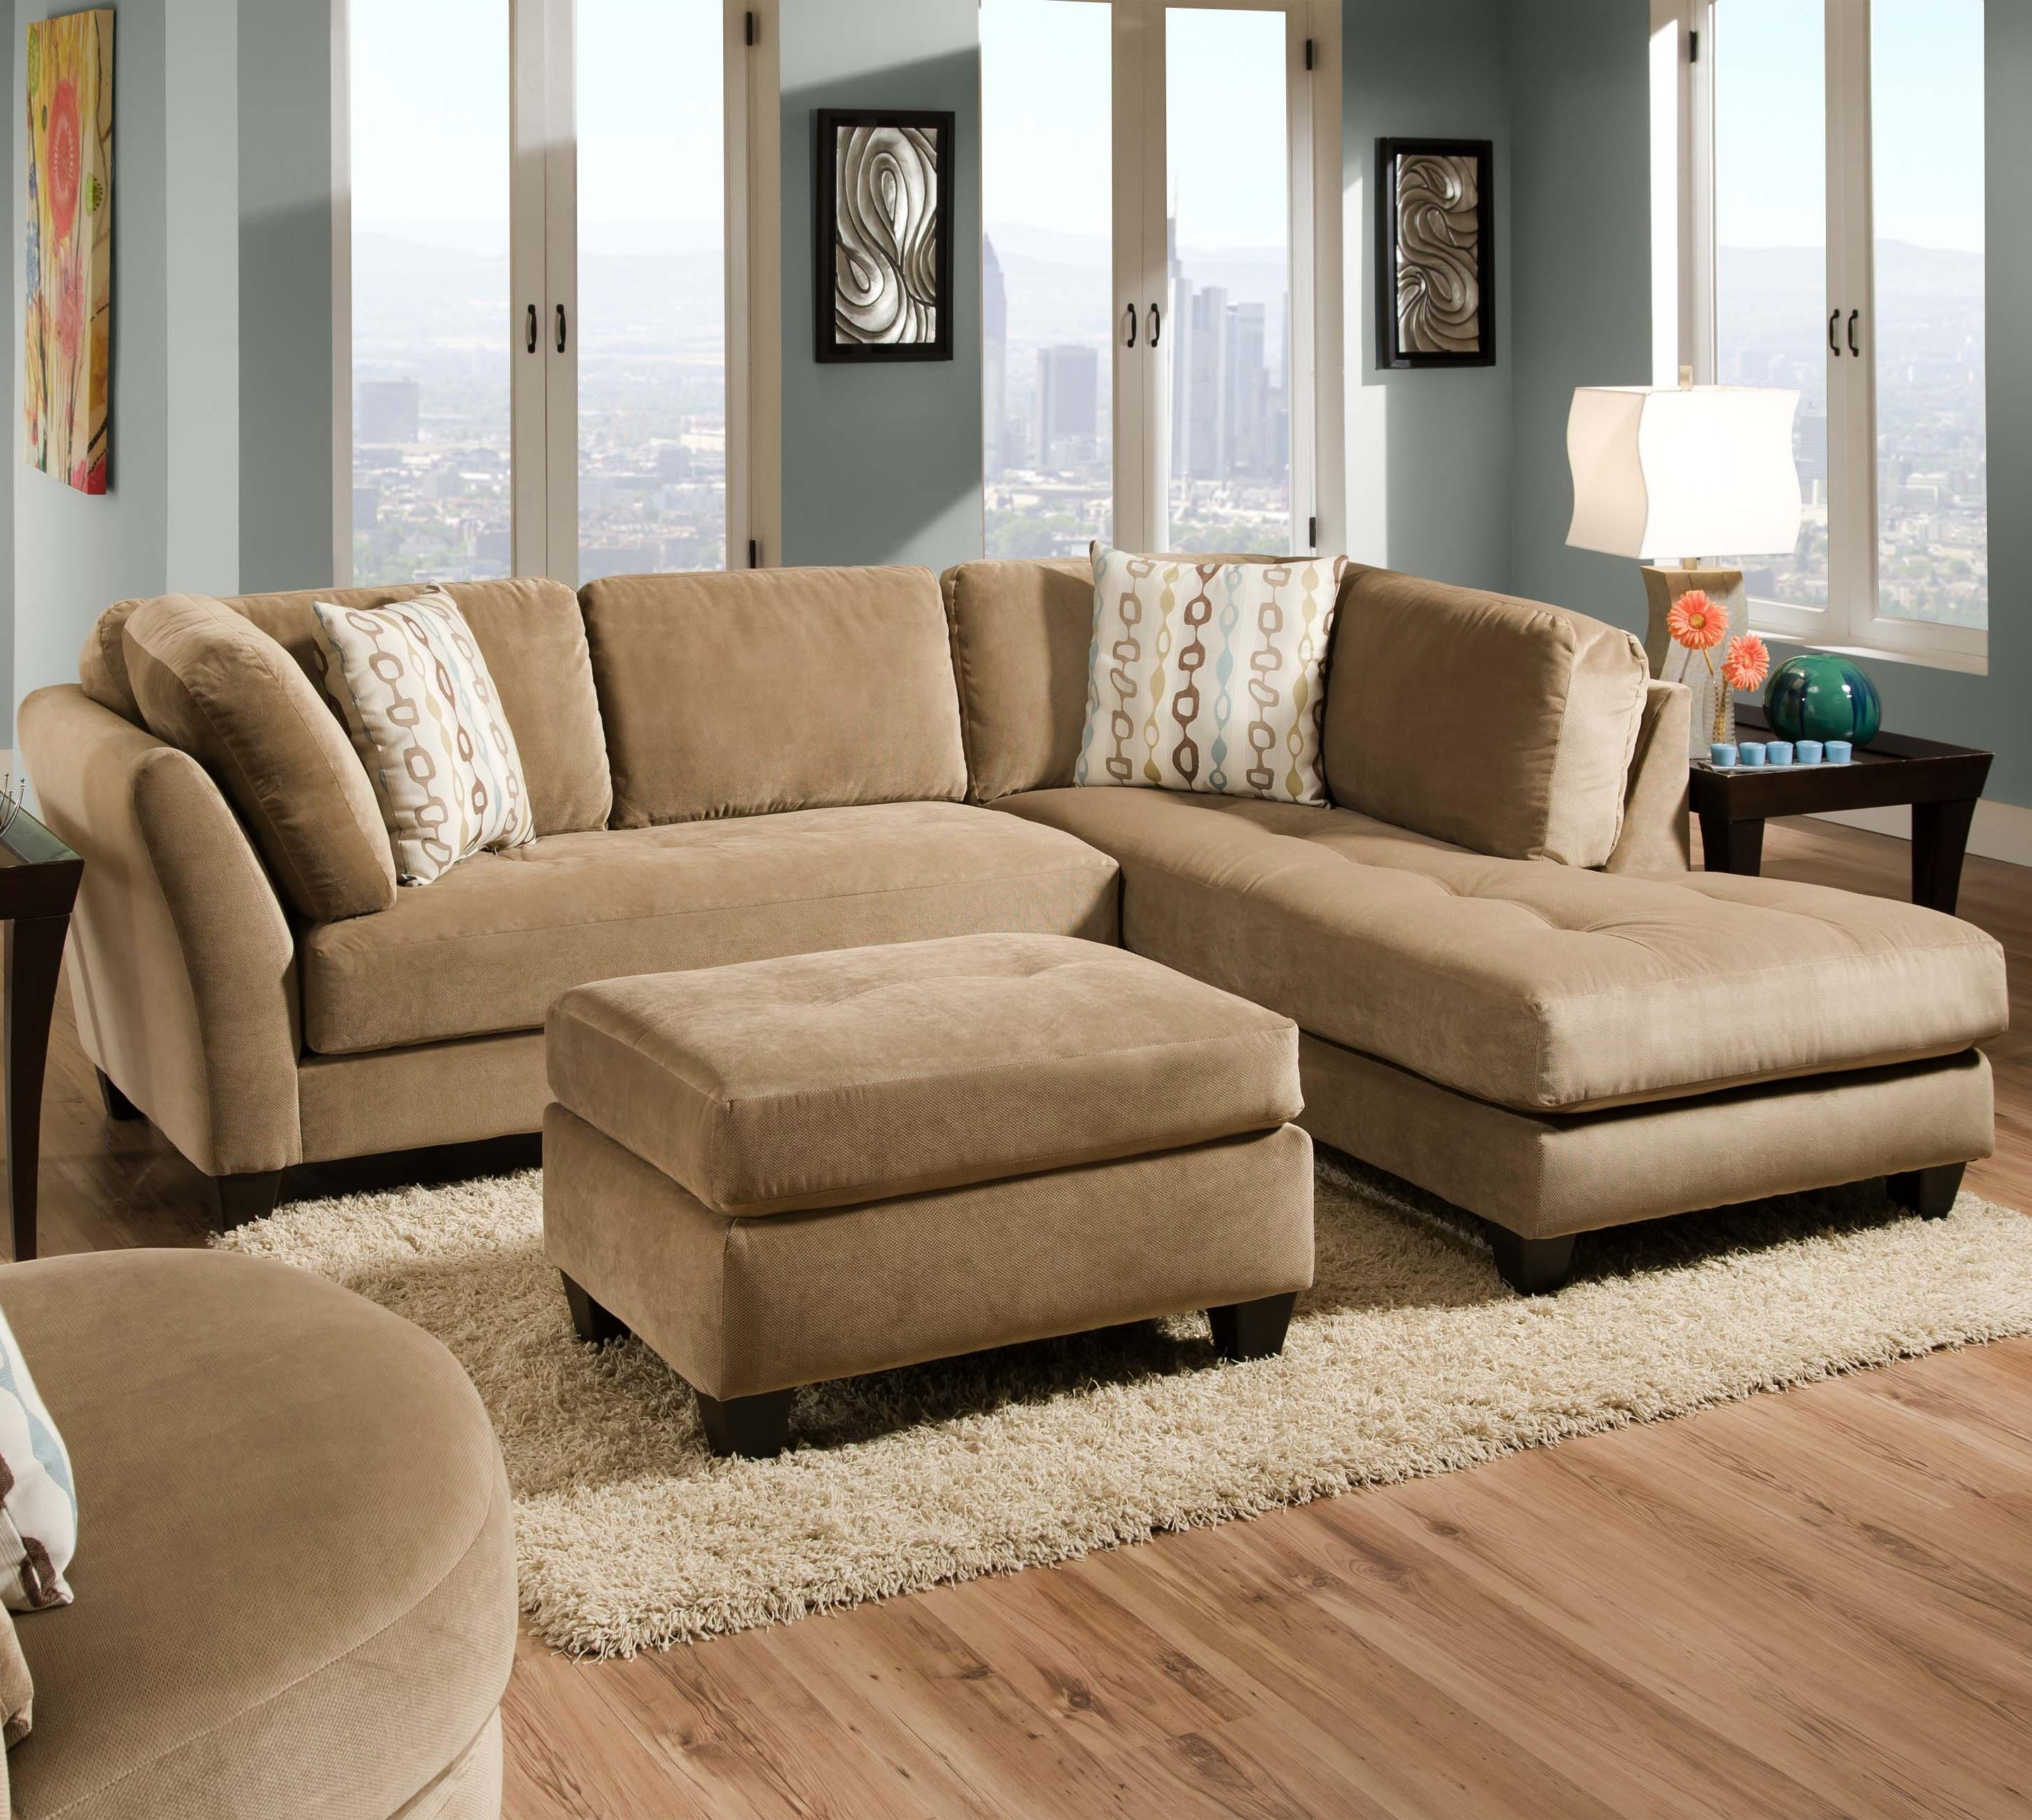 35B Slugger Mocha 2 Piece Sectionalcorinthian - Great American pertaining to Memphis Tn Sectional Sofas (Image 2 of 10)